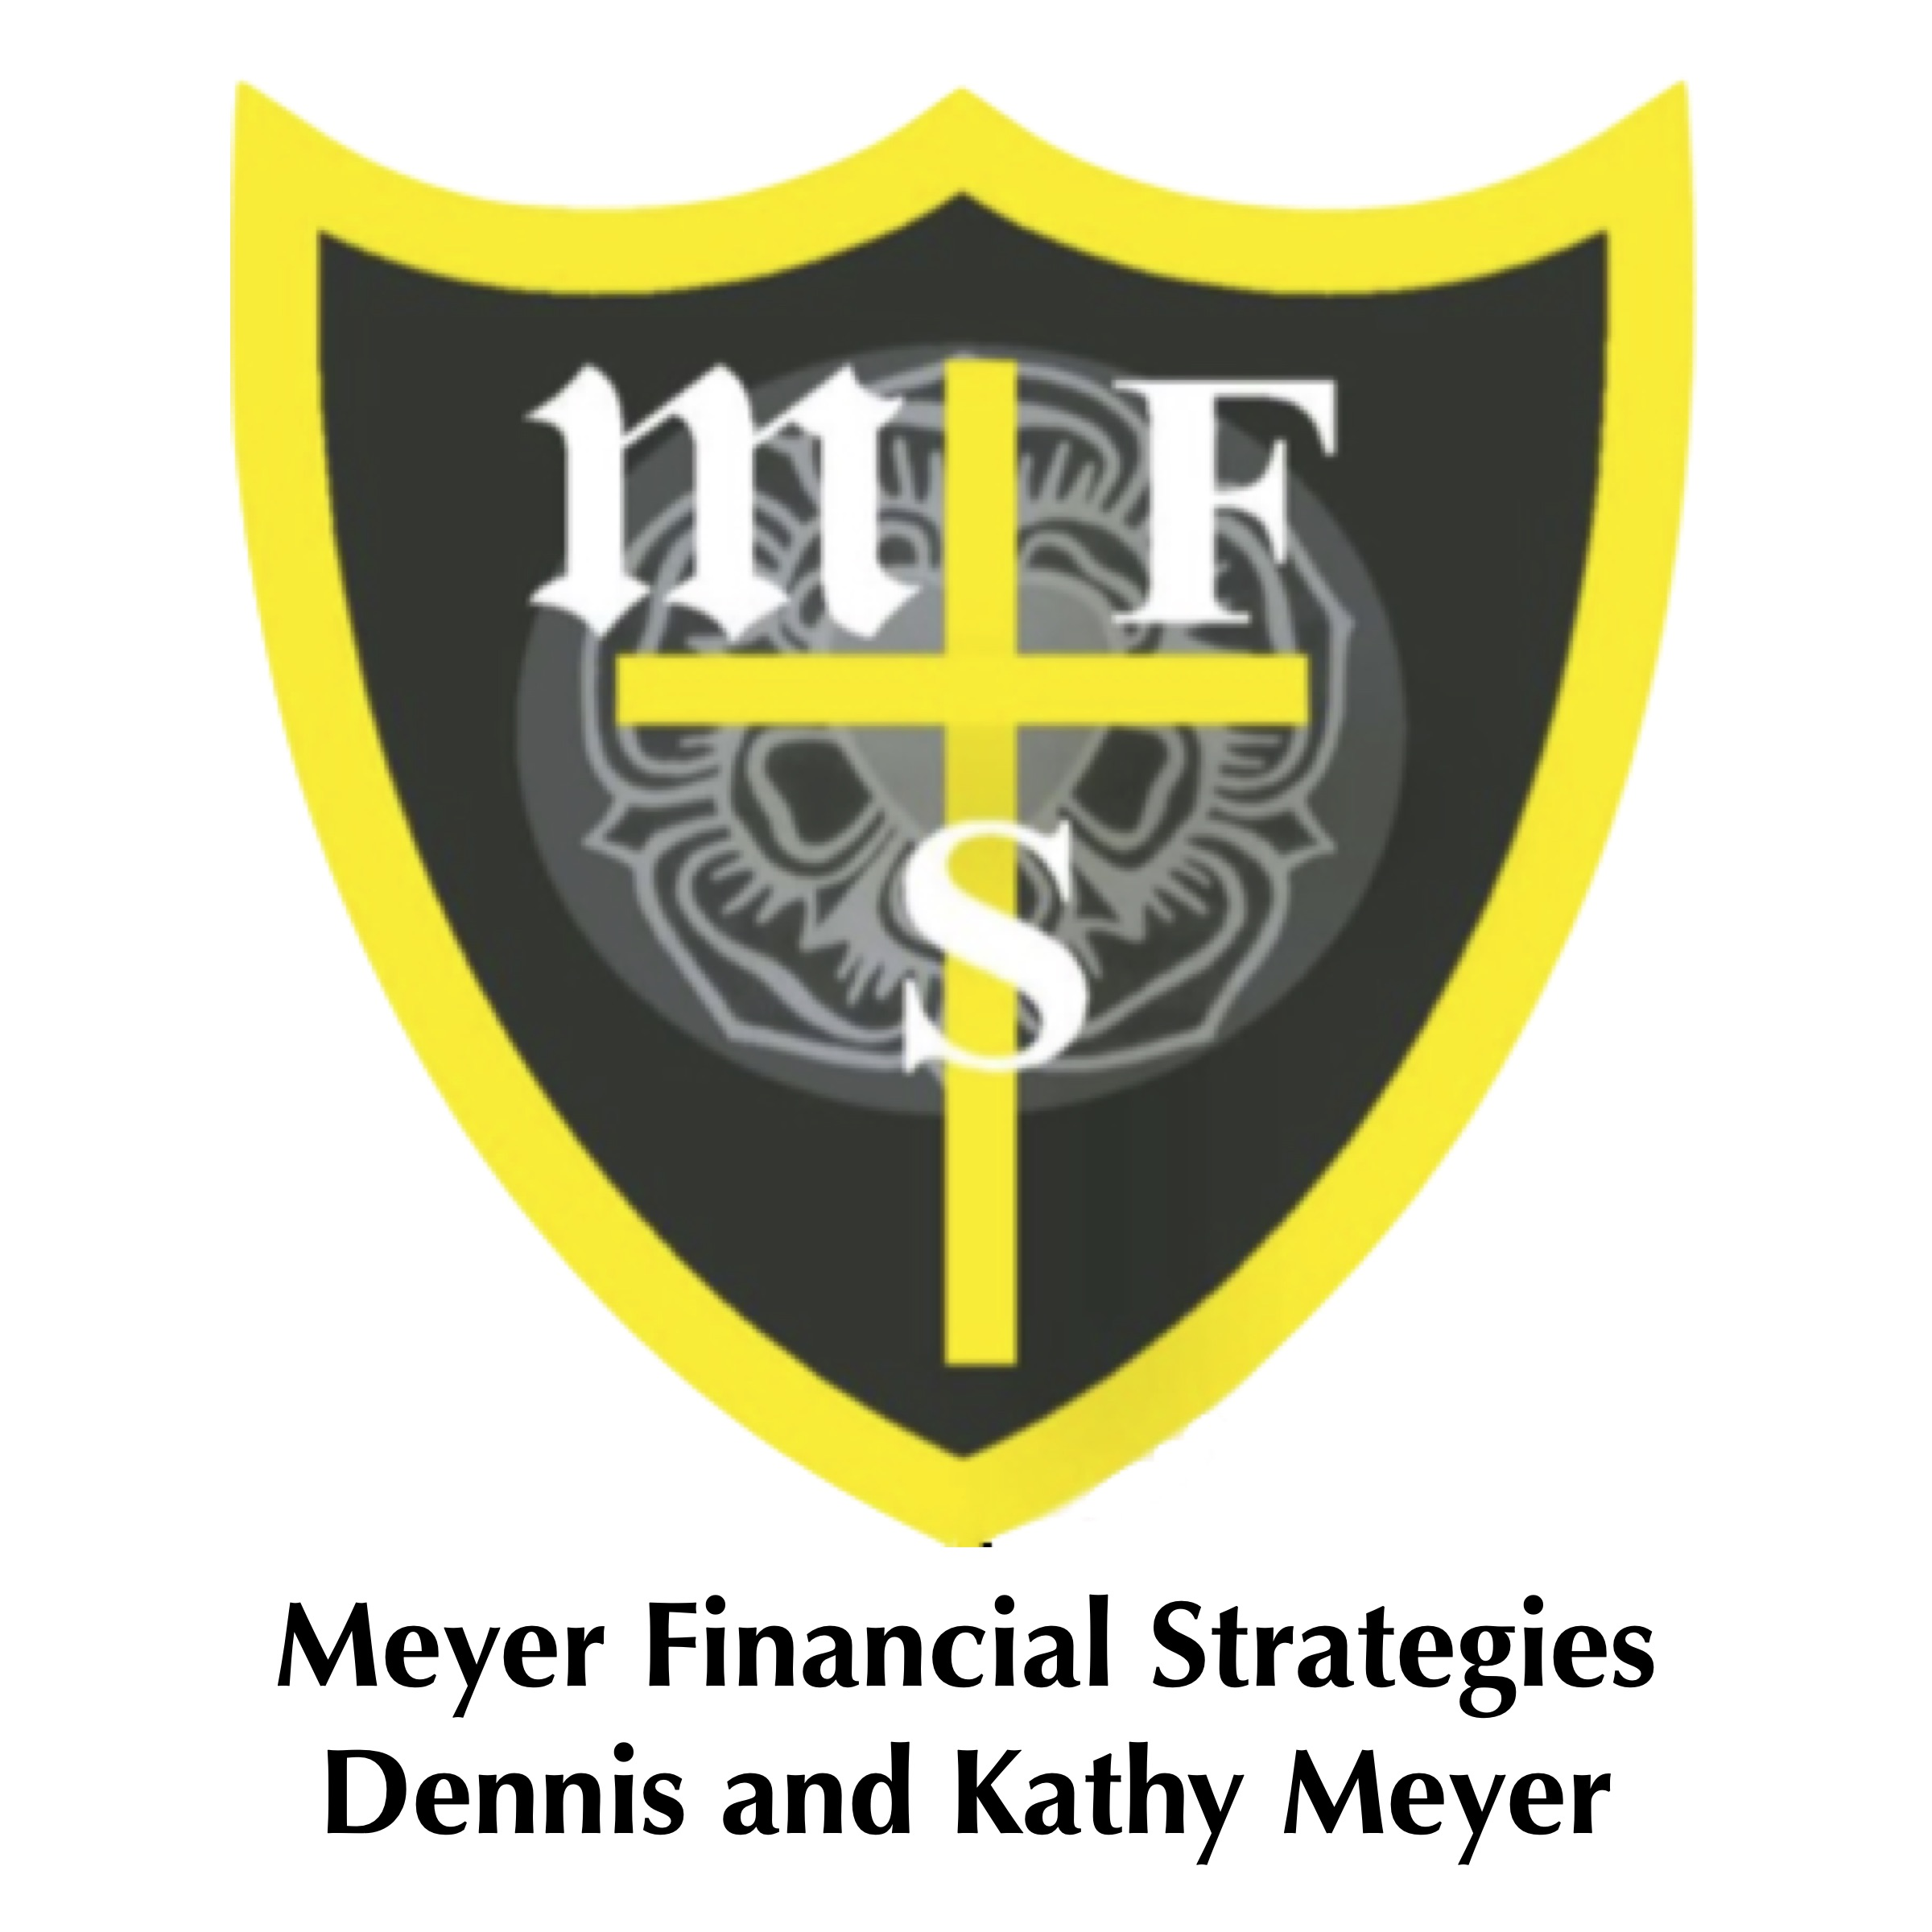 Meyer Financial Strategies, Inc., Dennis and Kathy Meyer